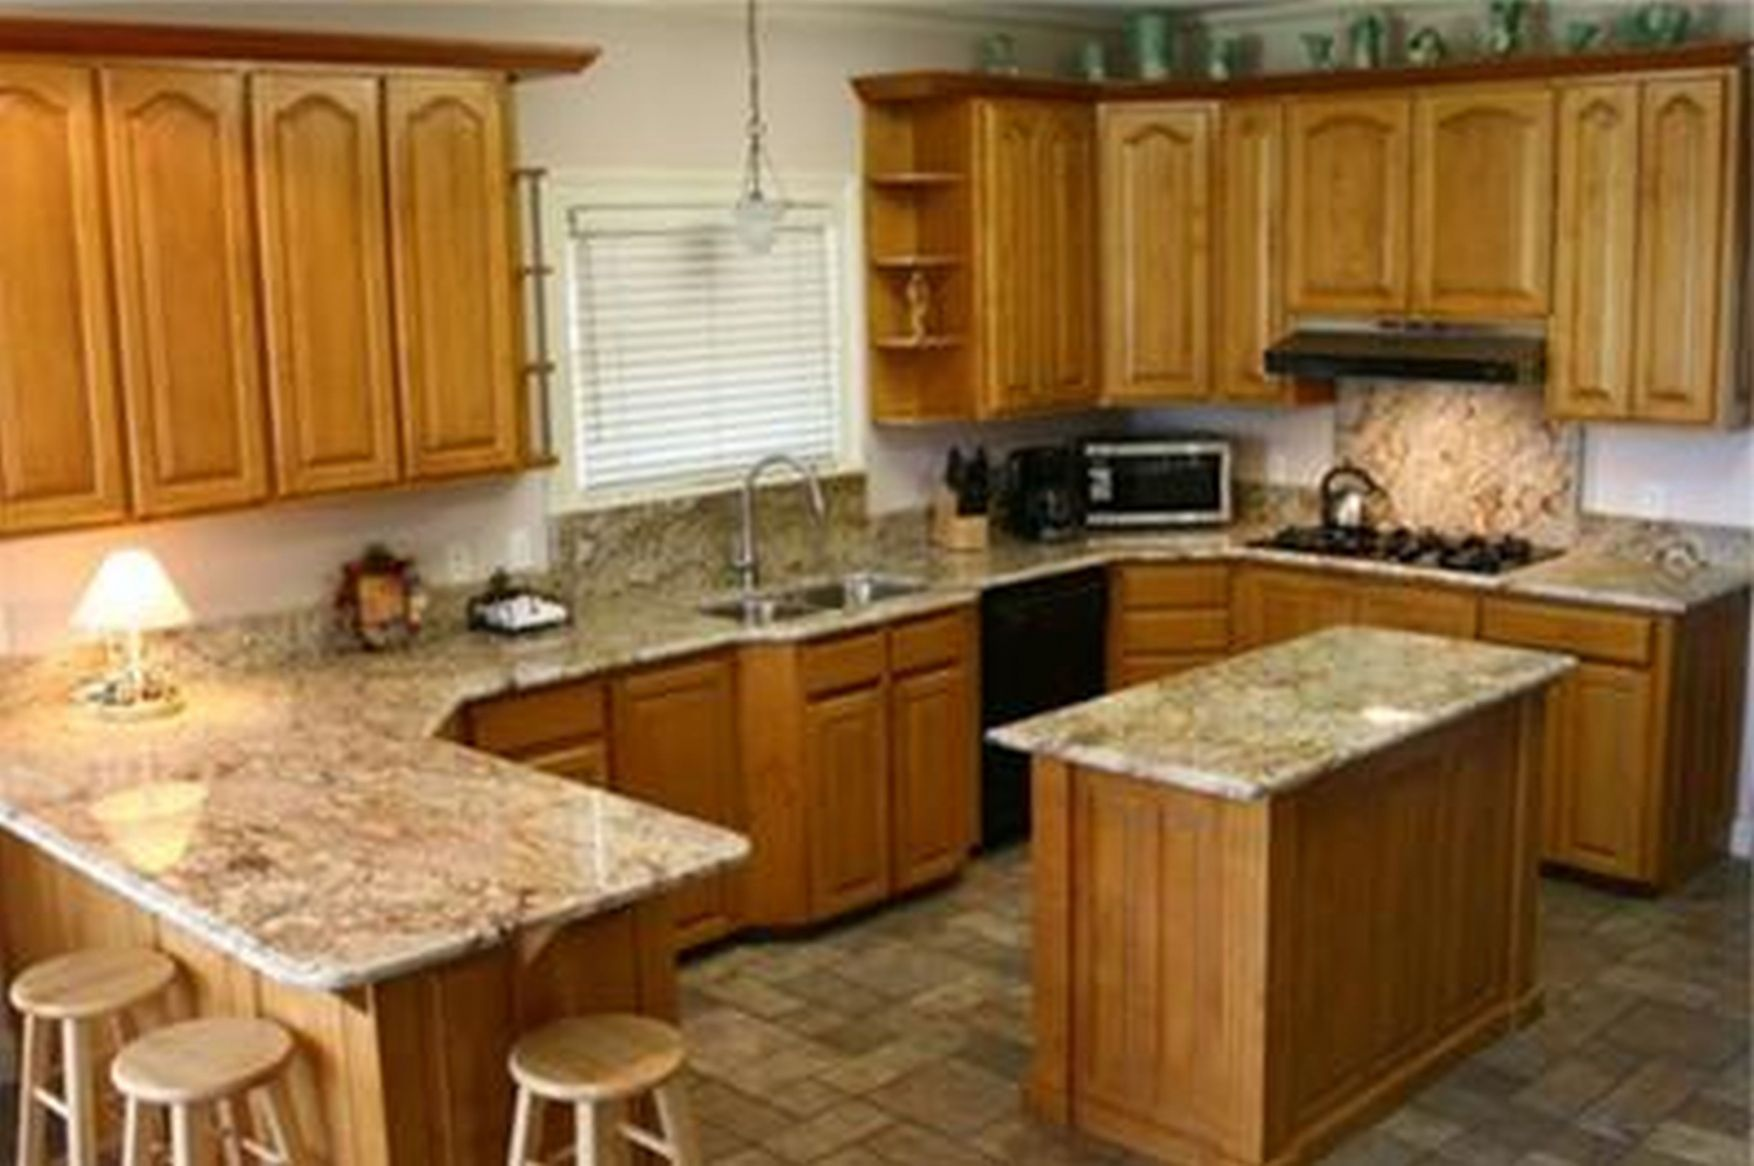 20+ How Much Does It Cost to Install Granite Countertops